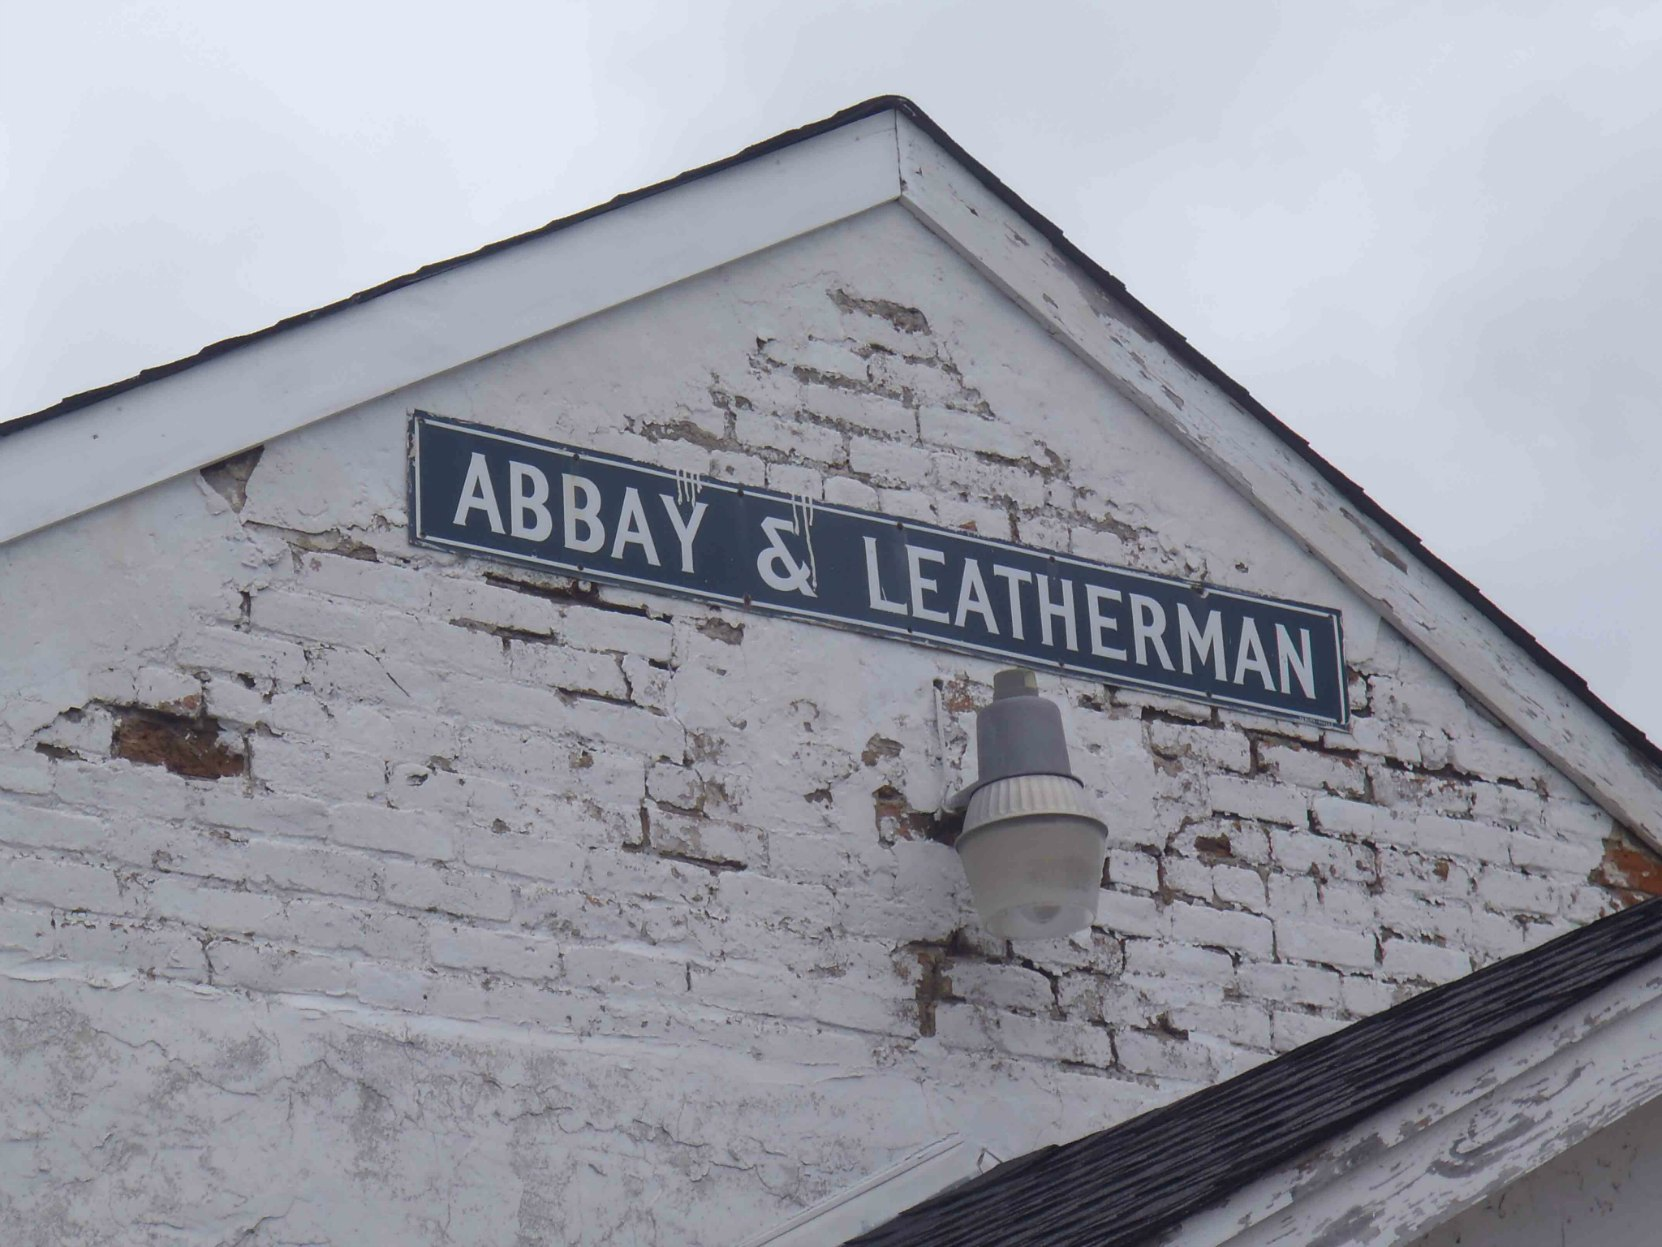 Abbay & Leatherman sign on plantation commissary building, Tunica County, Mississippi